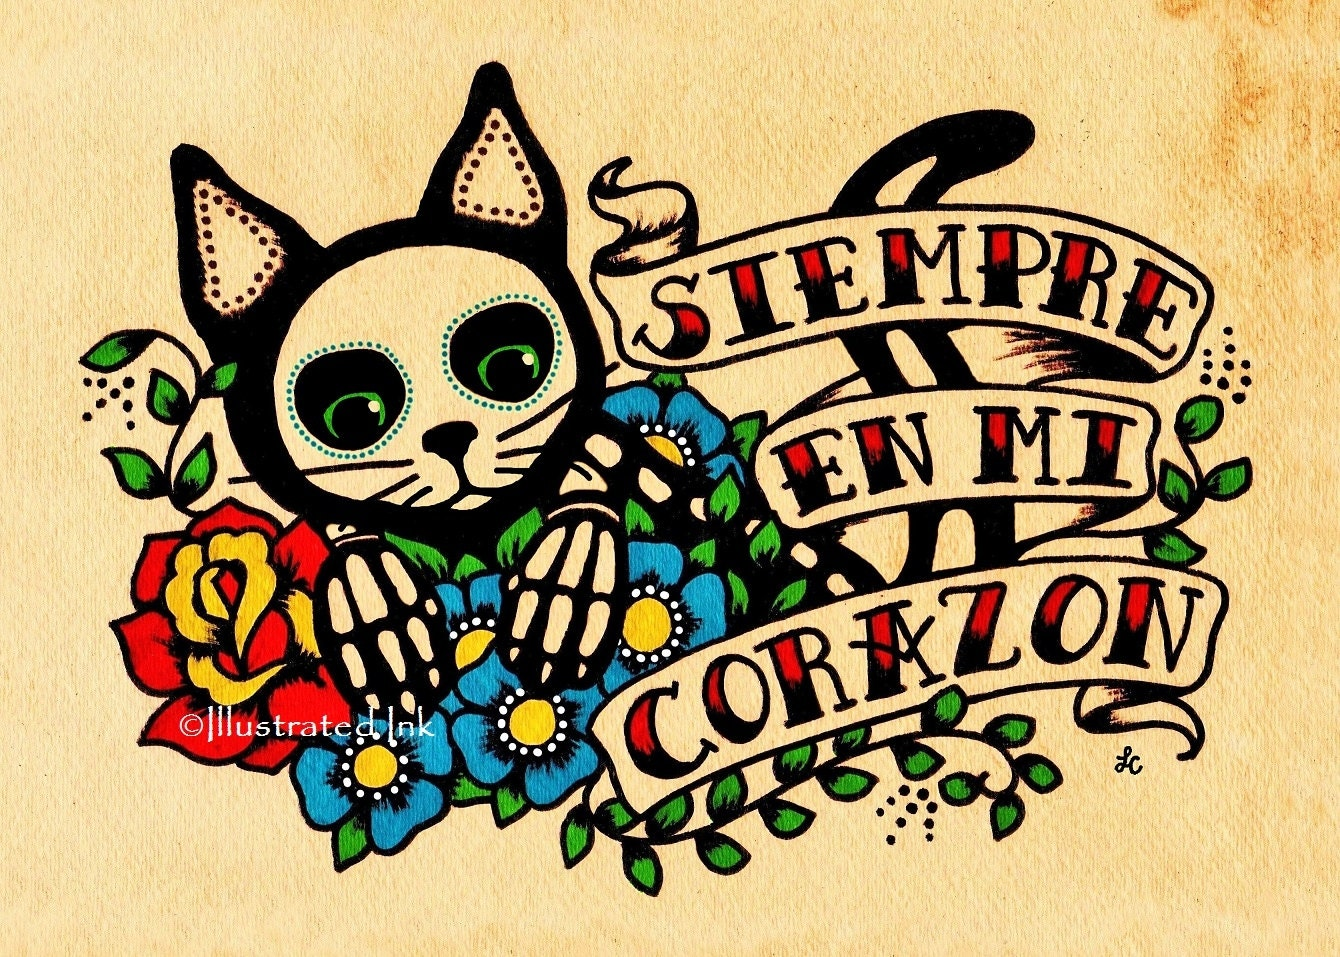 Day of the Dead CAT Dia de los Muertos Art Print 5 x 7 8 x 10